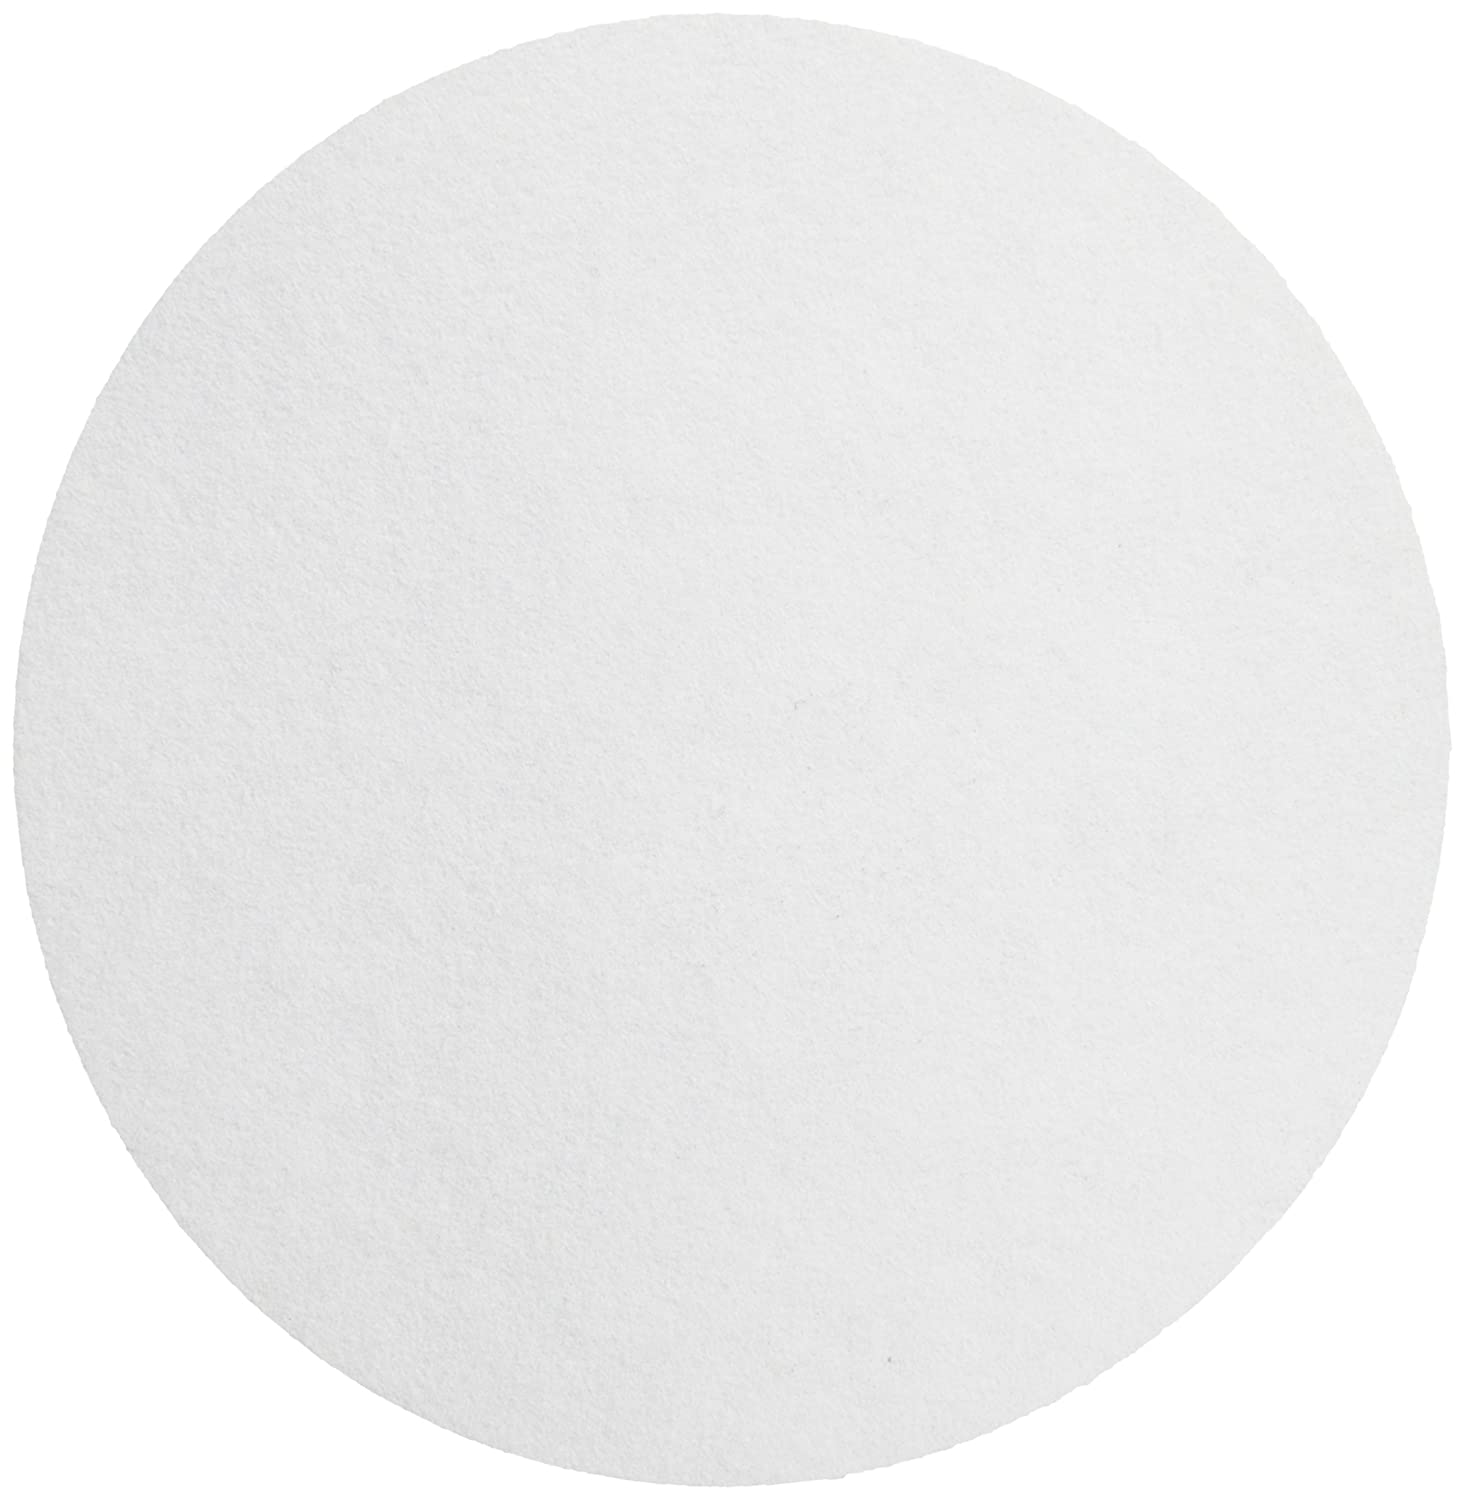 Whatman 1440150 Grade 40 Quantitative Filter Paper, Ash less, 0.007%, circle, 150 mm (Pack of 100) GE Healthcare F1220-7